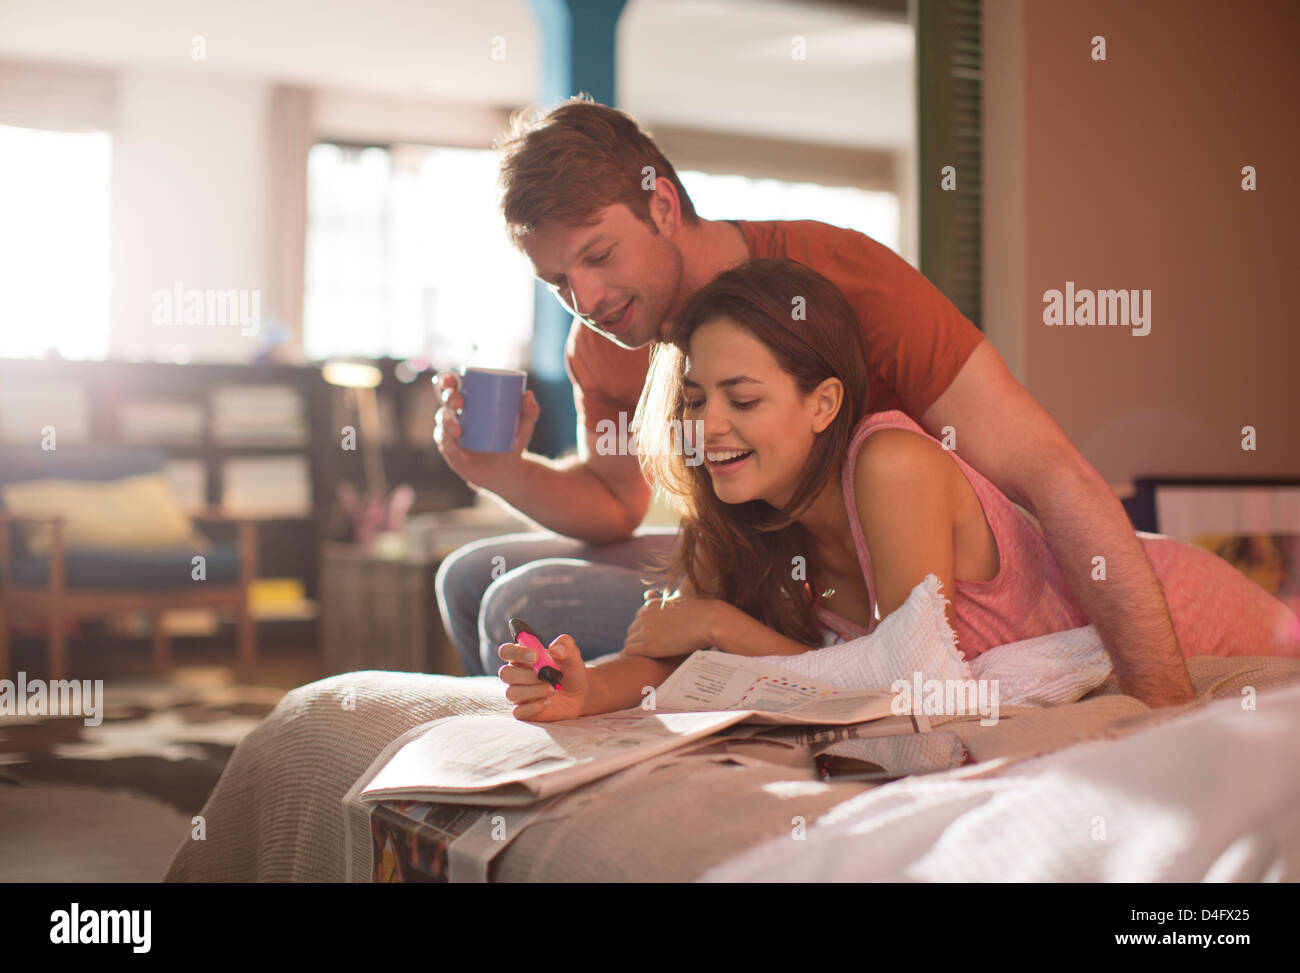 Couple reading newspaper together on bed - Stock Image